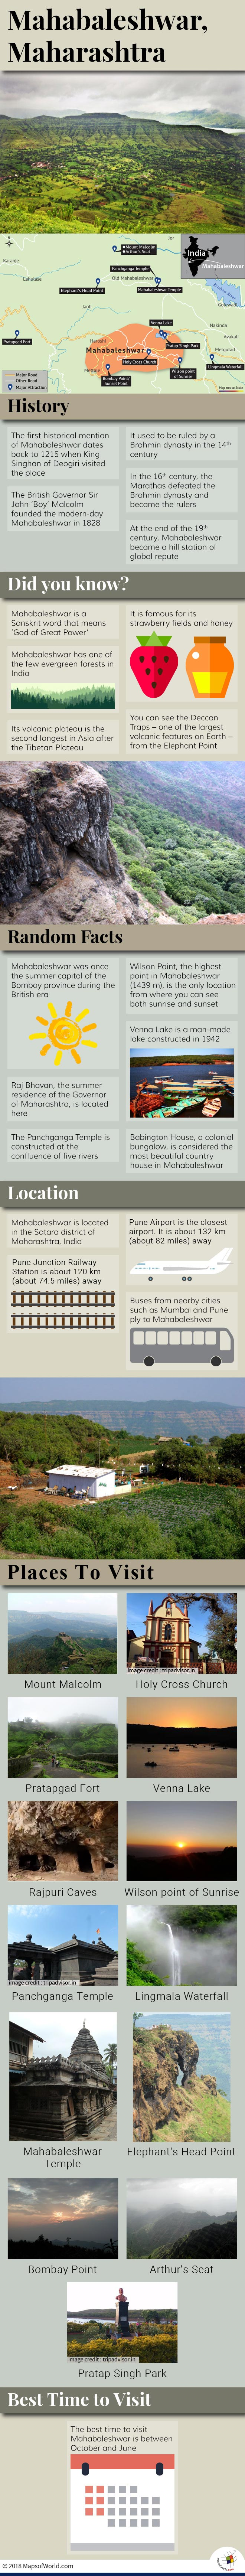 Infographic Depicting Mahabaleshwar Tourist Attractions